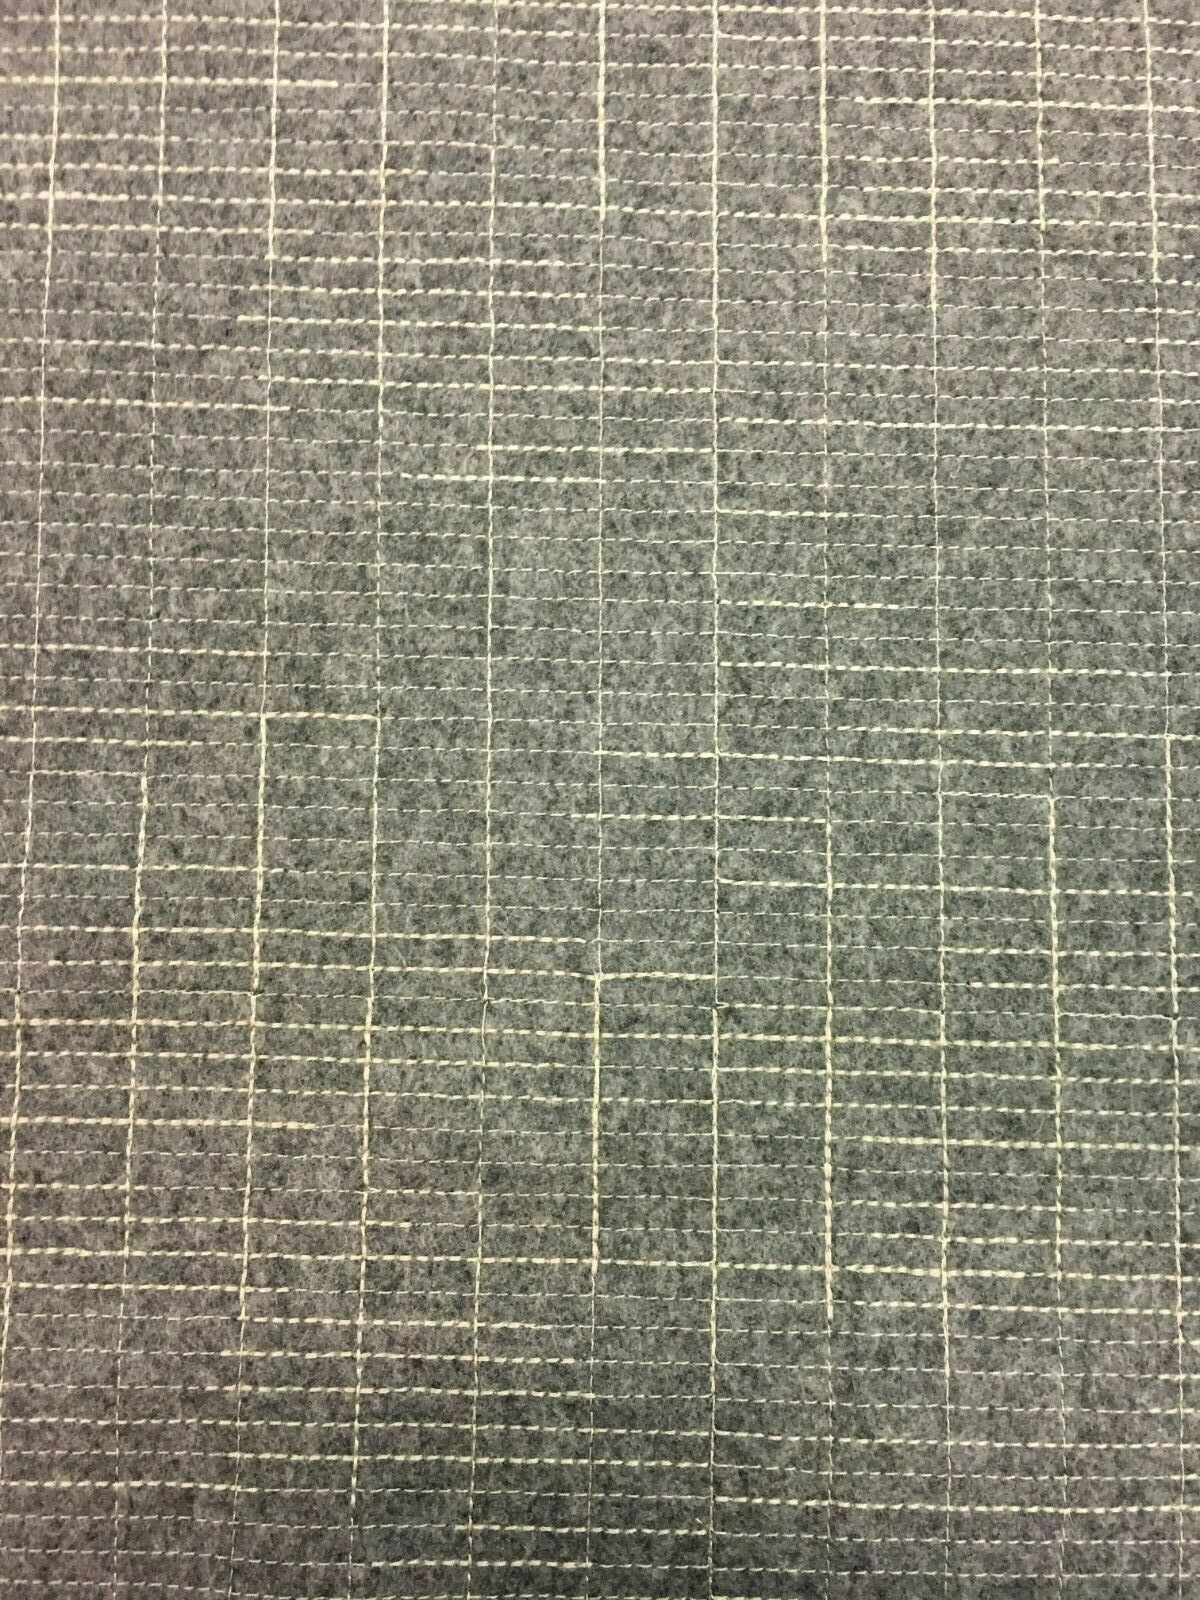 Luum Navigate Embroidered Grid Stone Gray Wool Upholstery Fabric 5.25 yds GG